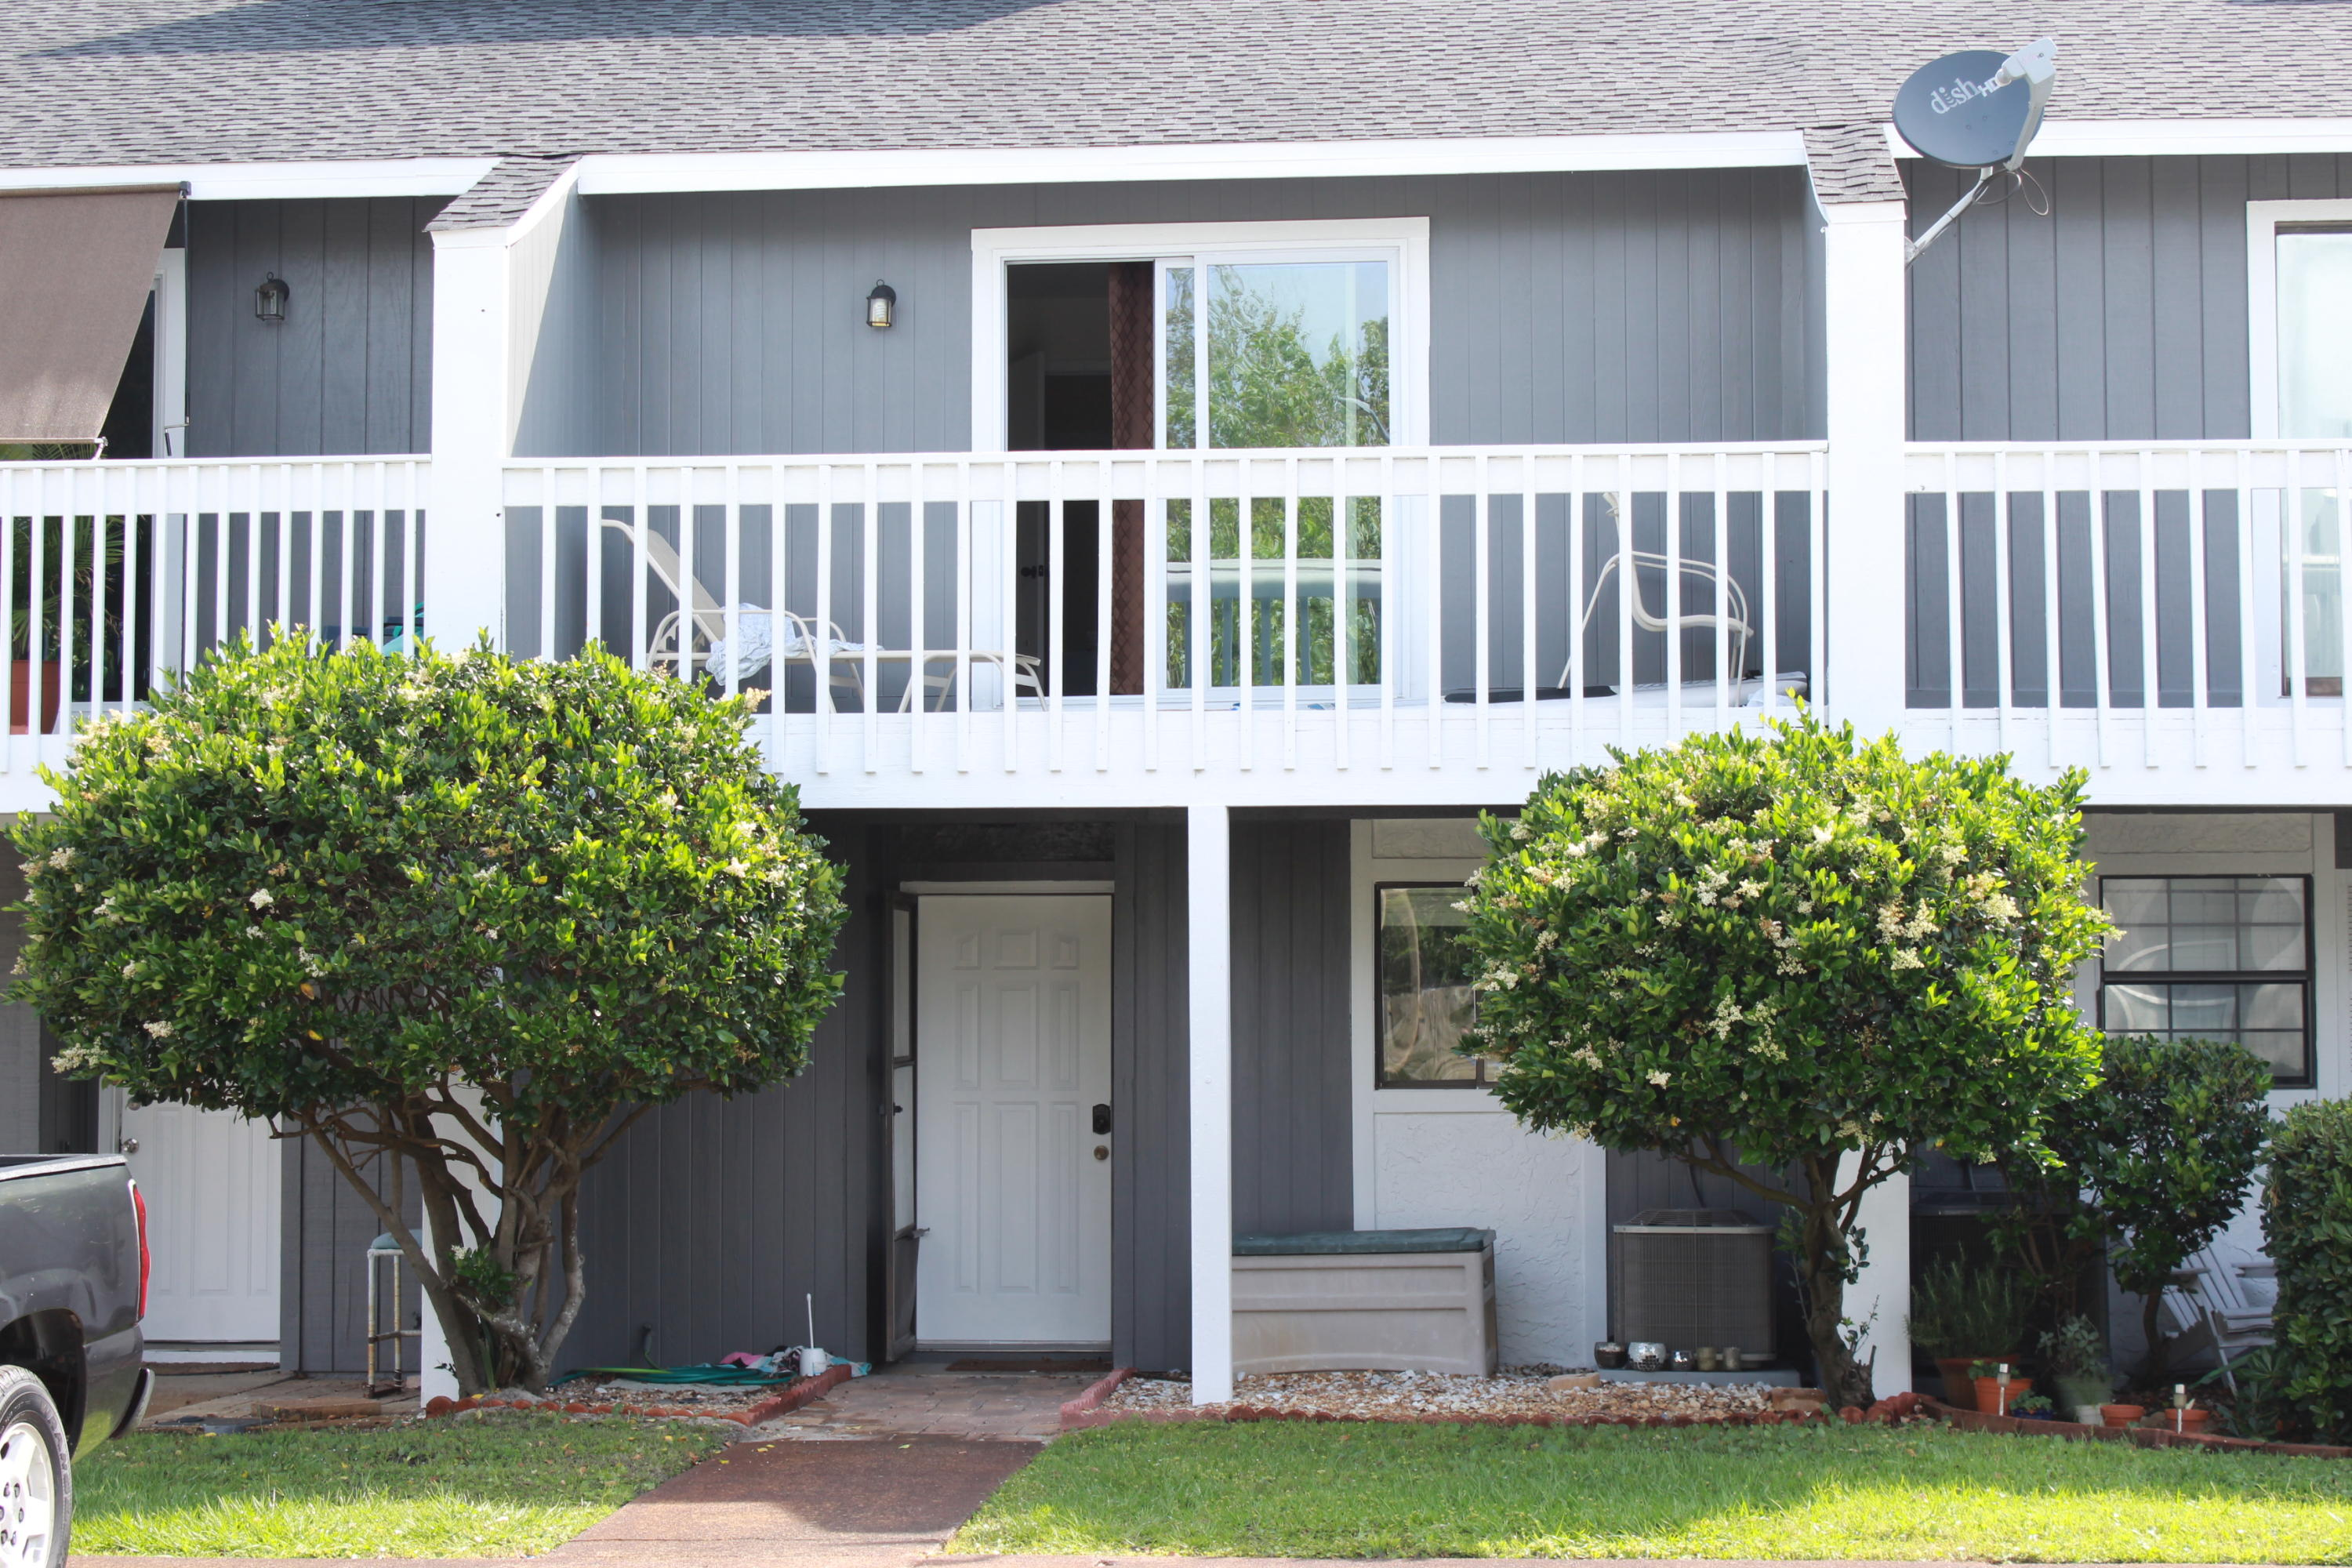 This spacious 2 bed, 2.5 bath townhome is located in central Destin with easy access to shopping, restaurants, & beaches!  Quality updates include Hardi-board siding, new HVAC (2018), updated kitchen cabinets, updated plumbing, engineered hardwood flooring upstairs, new roof, and additional storage out back! The living area features easy maintenance tile floors with a corner fireplace, a large breakfast bar, & additional space that could be a great dining area, office, or play area for kids!  Upstairs are two large bedrooms with their own bathrooms & a large balcony! The entire complex has recently received a facelift with new exterior paint, new roofs, and resurfaced pool! Move in & customize to your liking knowing the major expenses are done for you already!